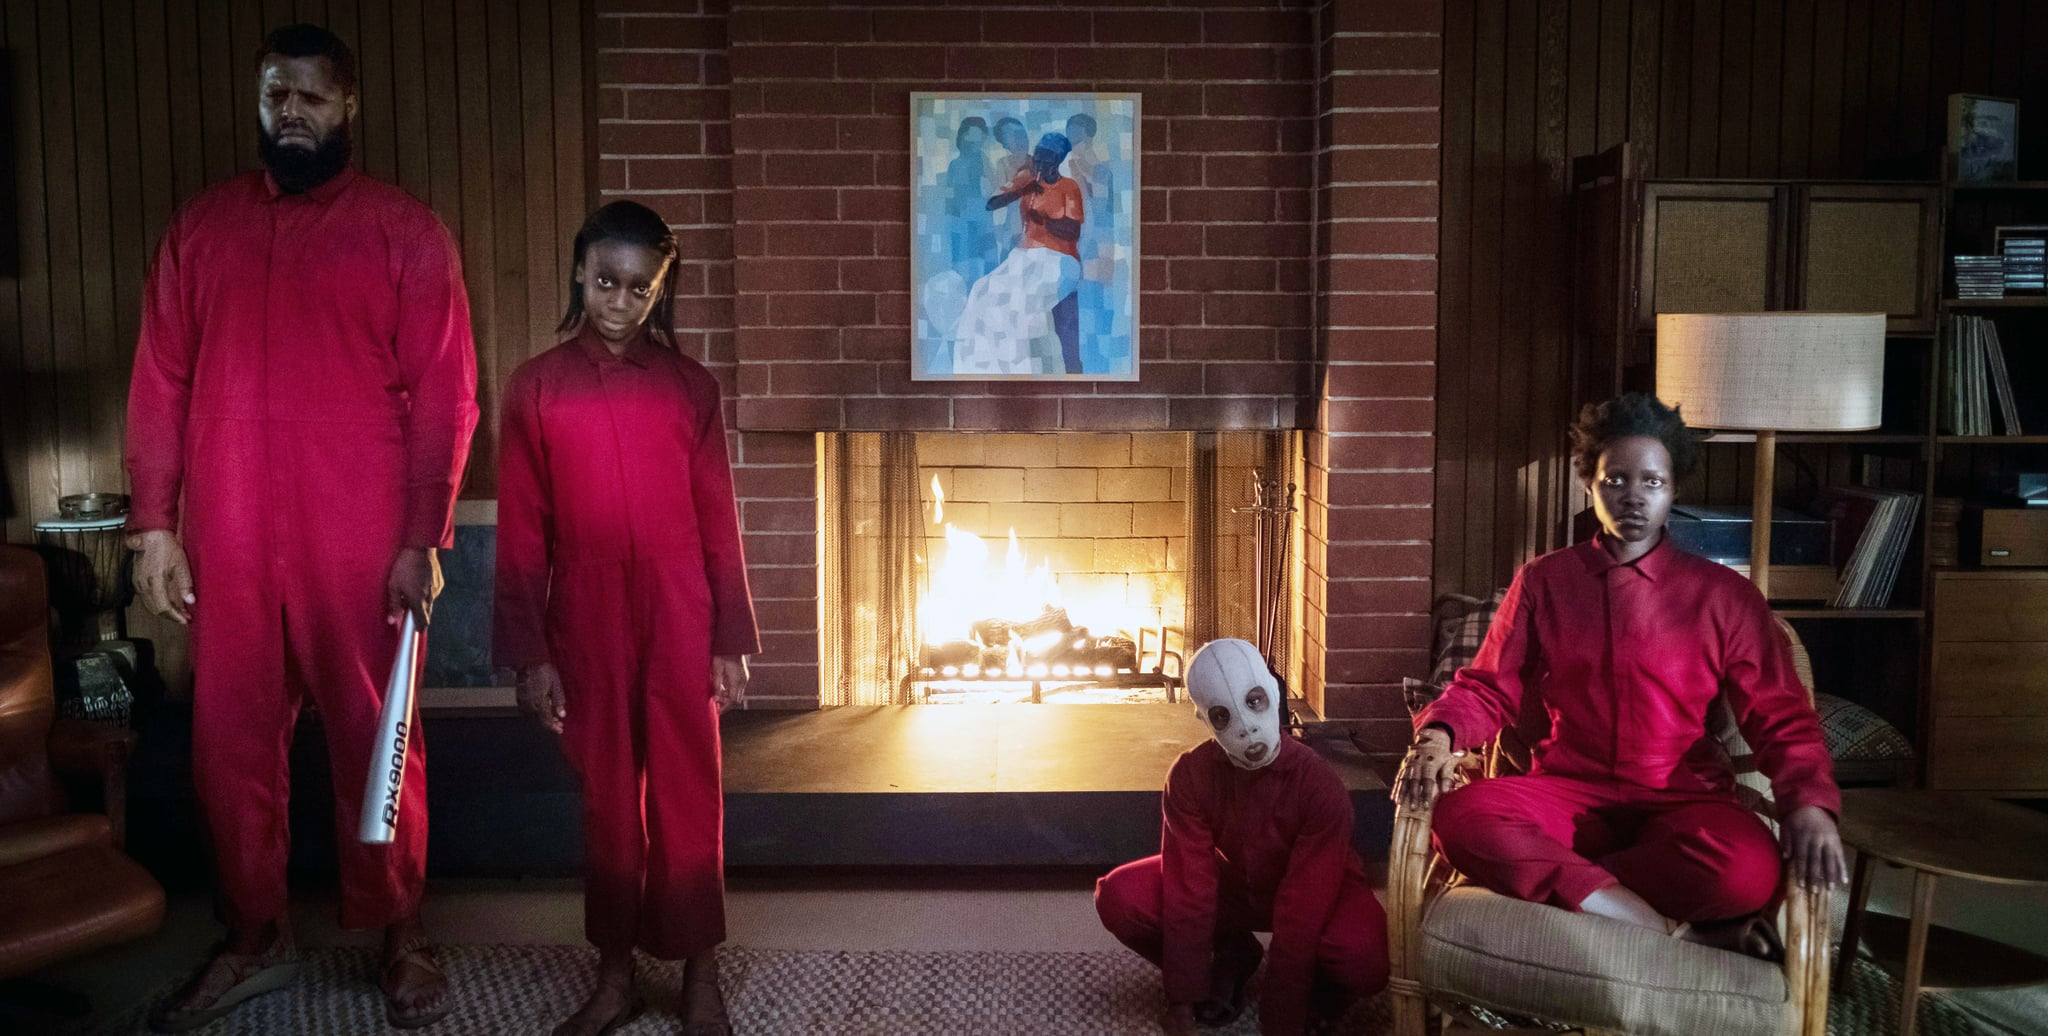 US, The Wilson family doppelgangers as portrayed from left:  Winston Duke, Shahadi Wright Joseph, Evan Alex (wearing mask), Lupita Nyong'o, 2019. ph: Claudette Barius /  Universal / courtesy Everett Collection